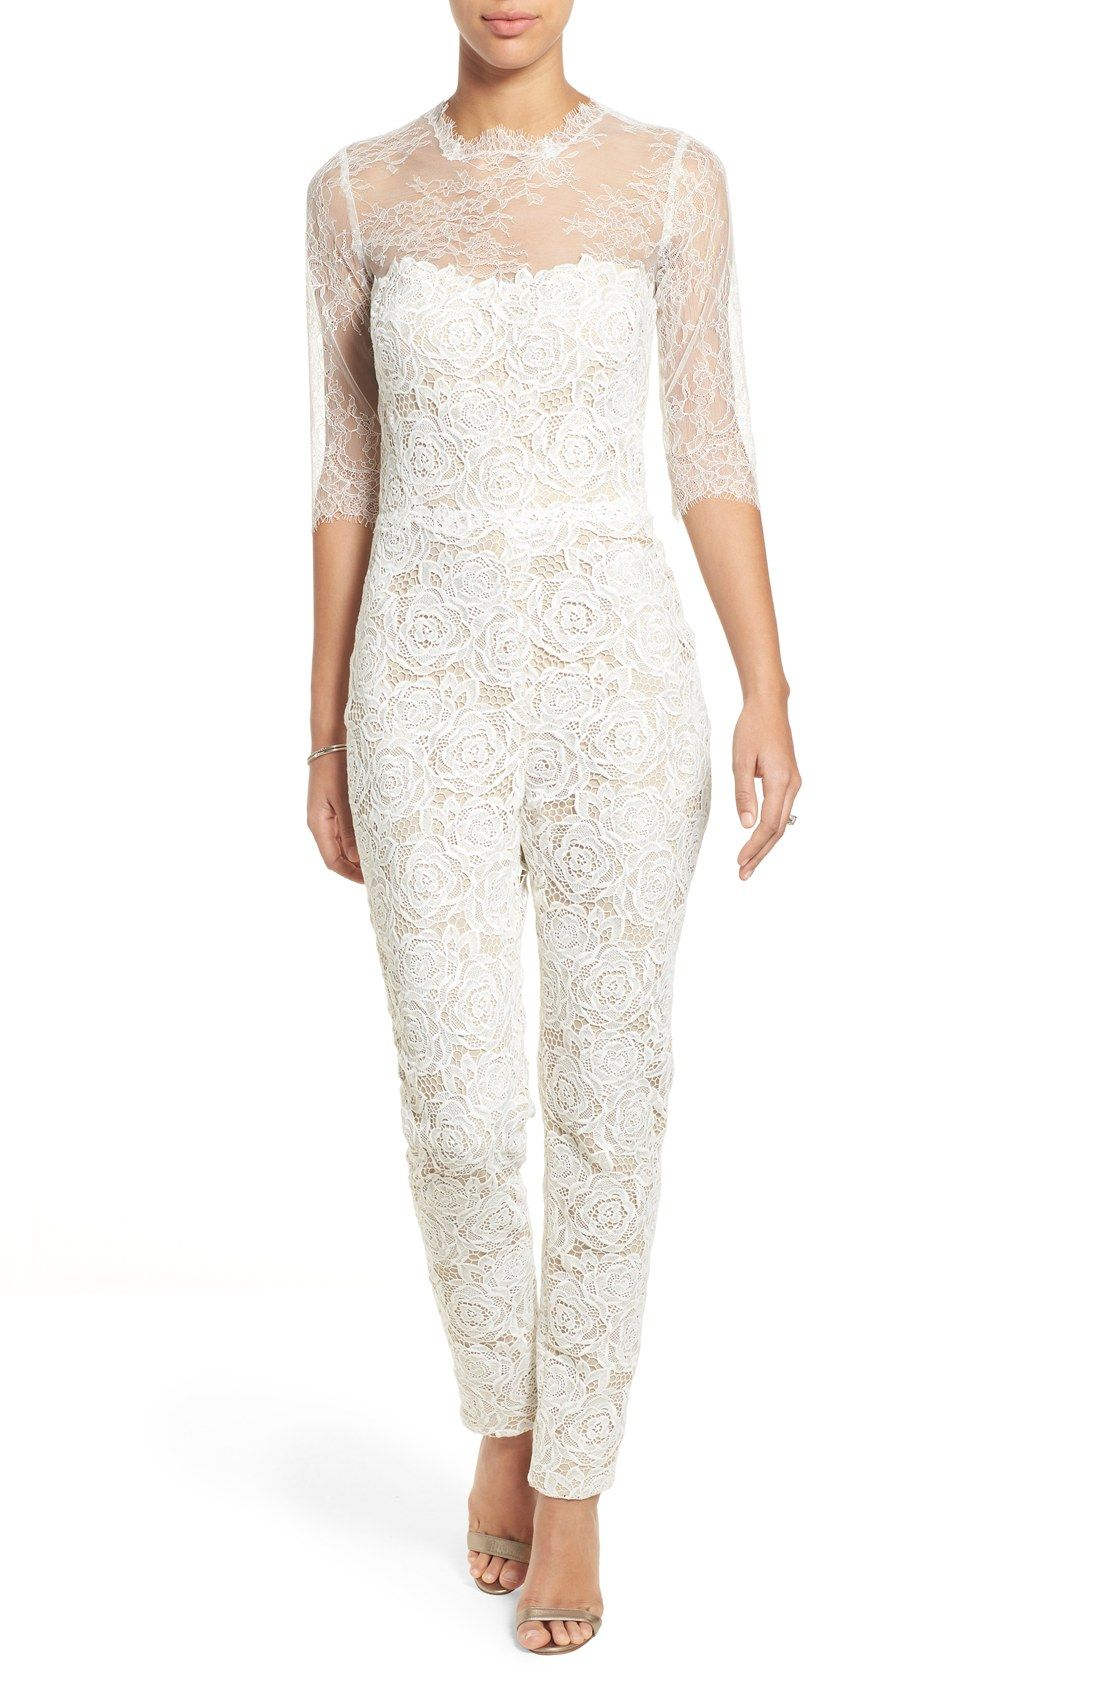 c9b3f06a61f Monique Lhuillier Ready to Wed Guipure Lace Jumpsuit available at